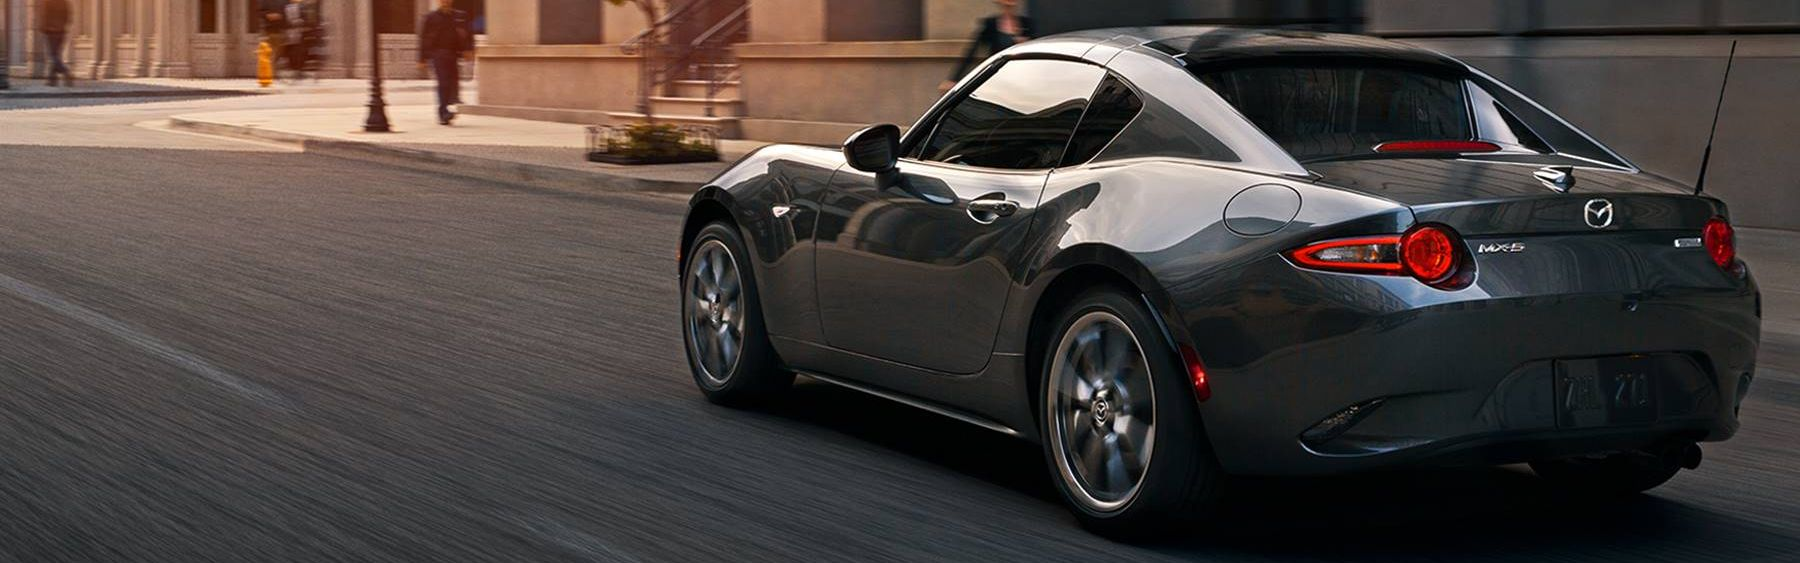 Mazda Mx 5 Miata >> New 2019 Mazda Mx 5 Miata Rf Club